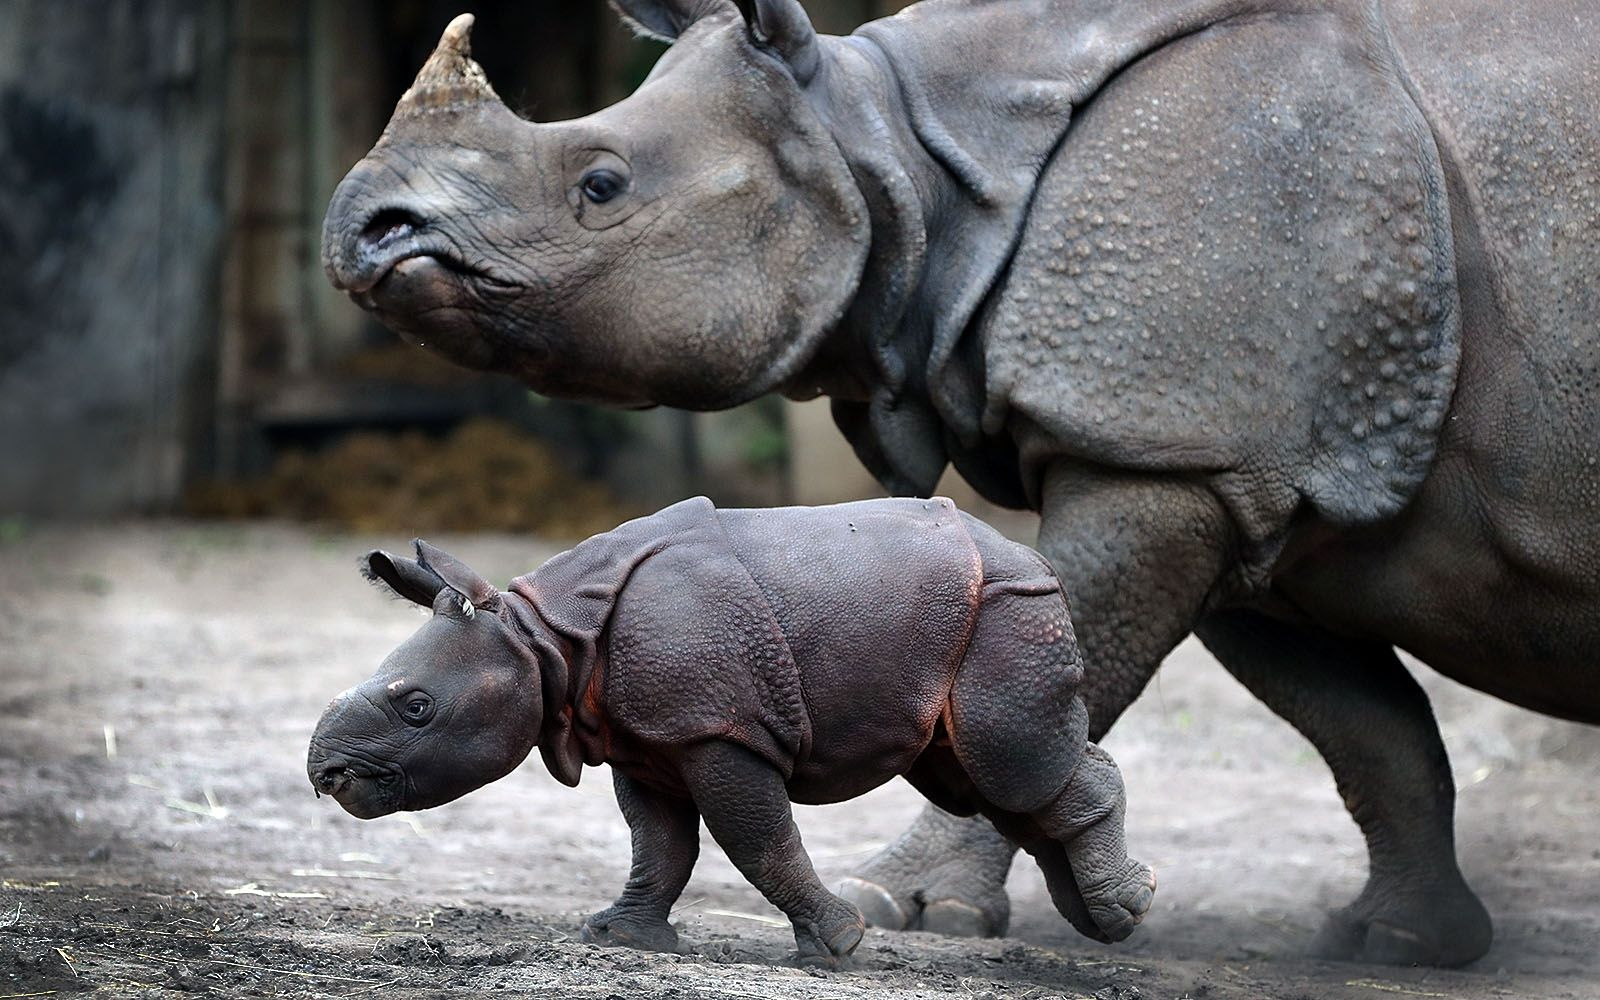 2019: Mohan the newest greater one-horned rhino, born June 17, with his mother, Tashi, at the Buffalo Zoo on July 12, 2019.